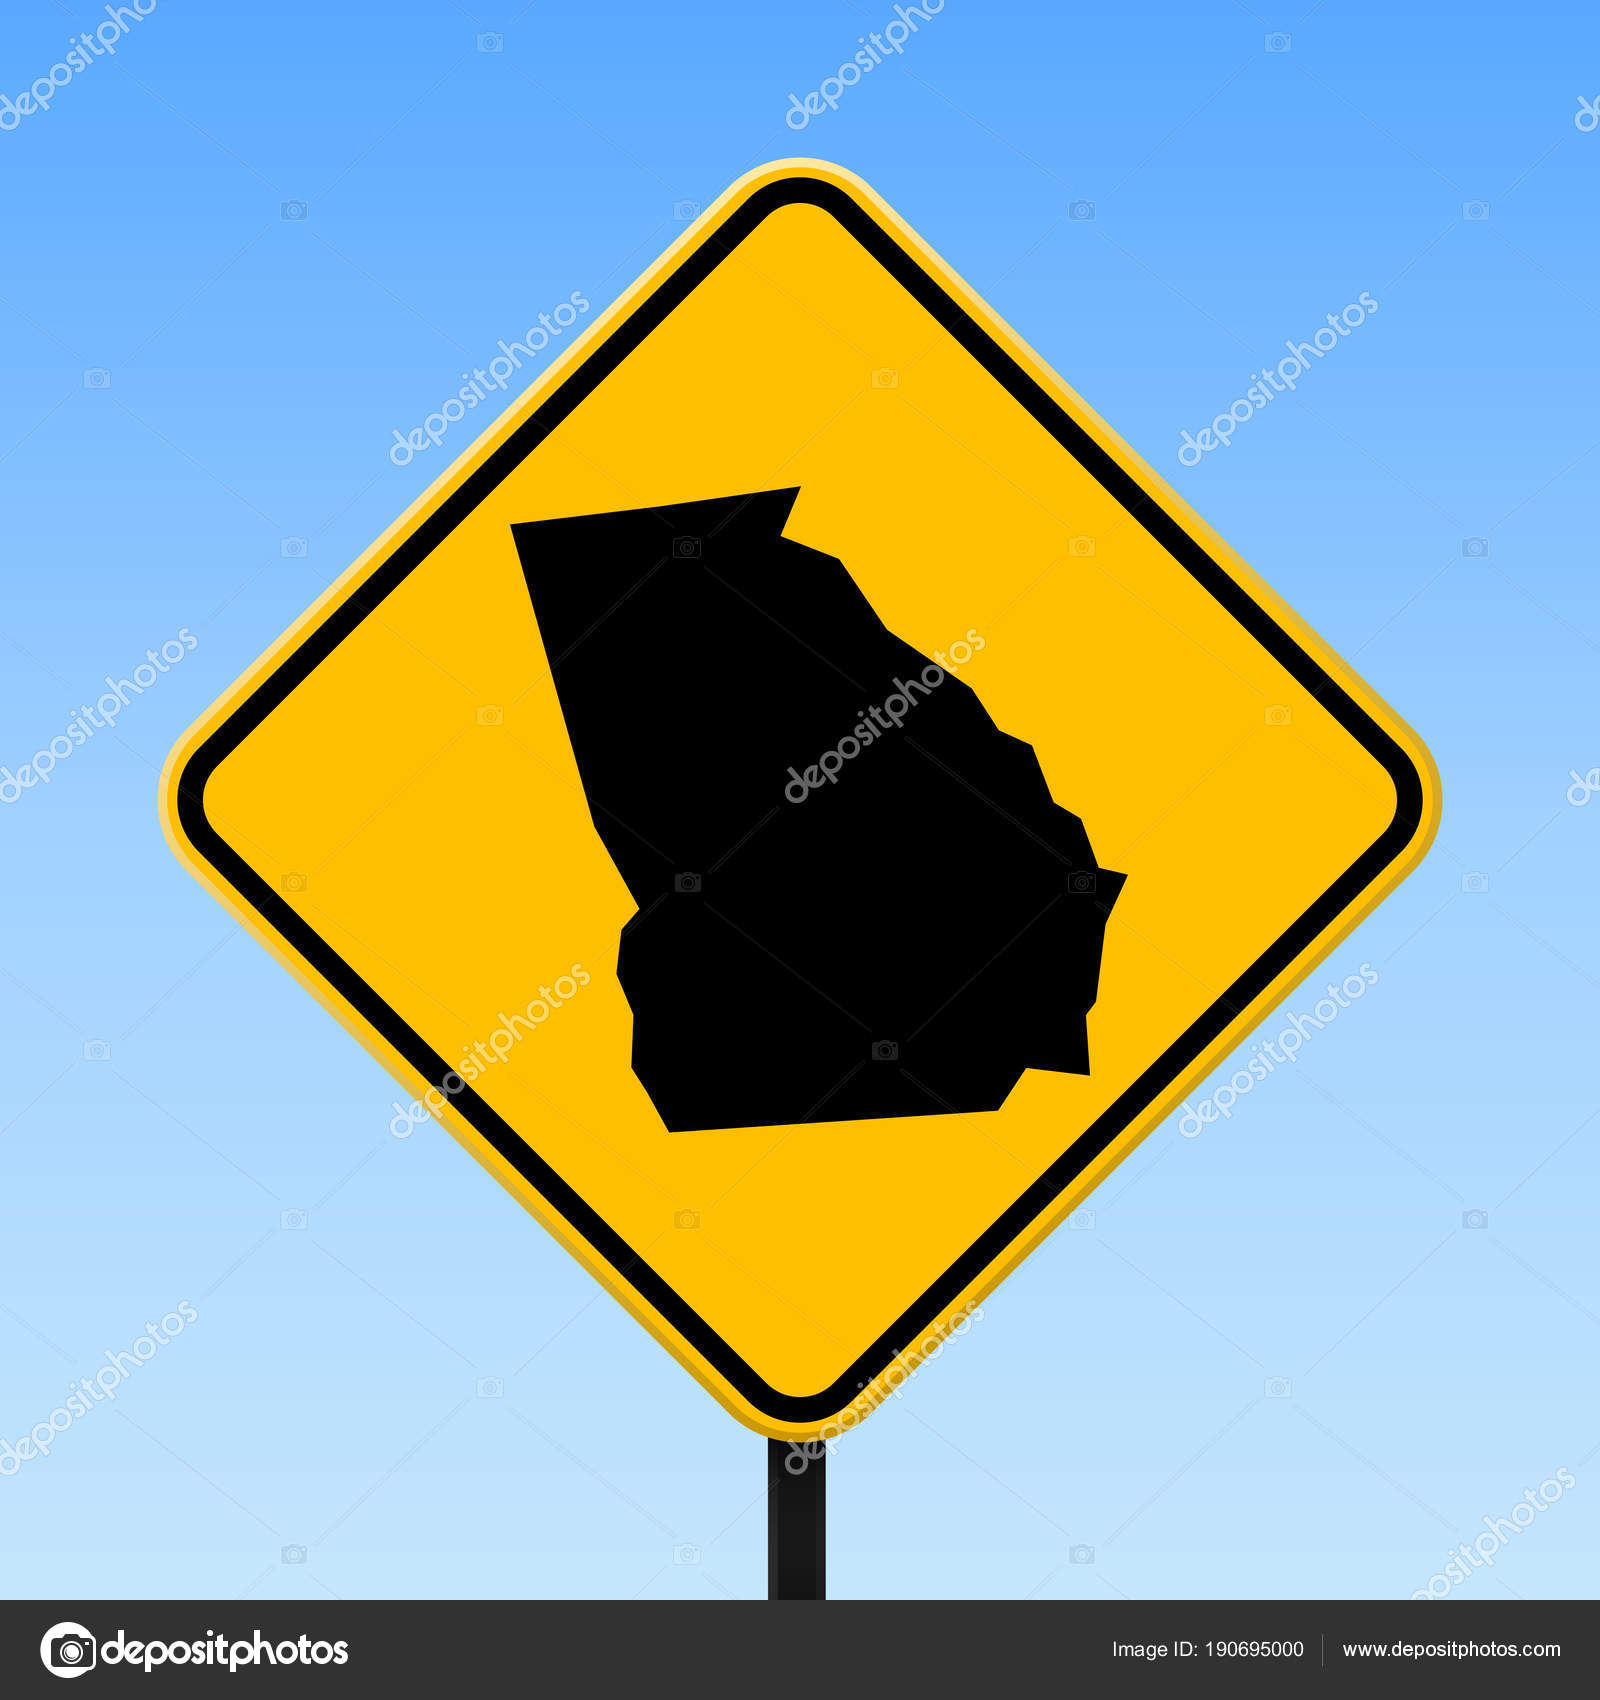 Georgia map on road sign Square poster with Georgia us state ... on georgia city maps, georgia asia maps, georgia home, georgia tourist, georgia highway maps, georgia mountains maps, georgia flight maps, georgia travel, georgia roads, georgia airport map, georgia gold maps,